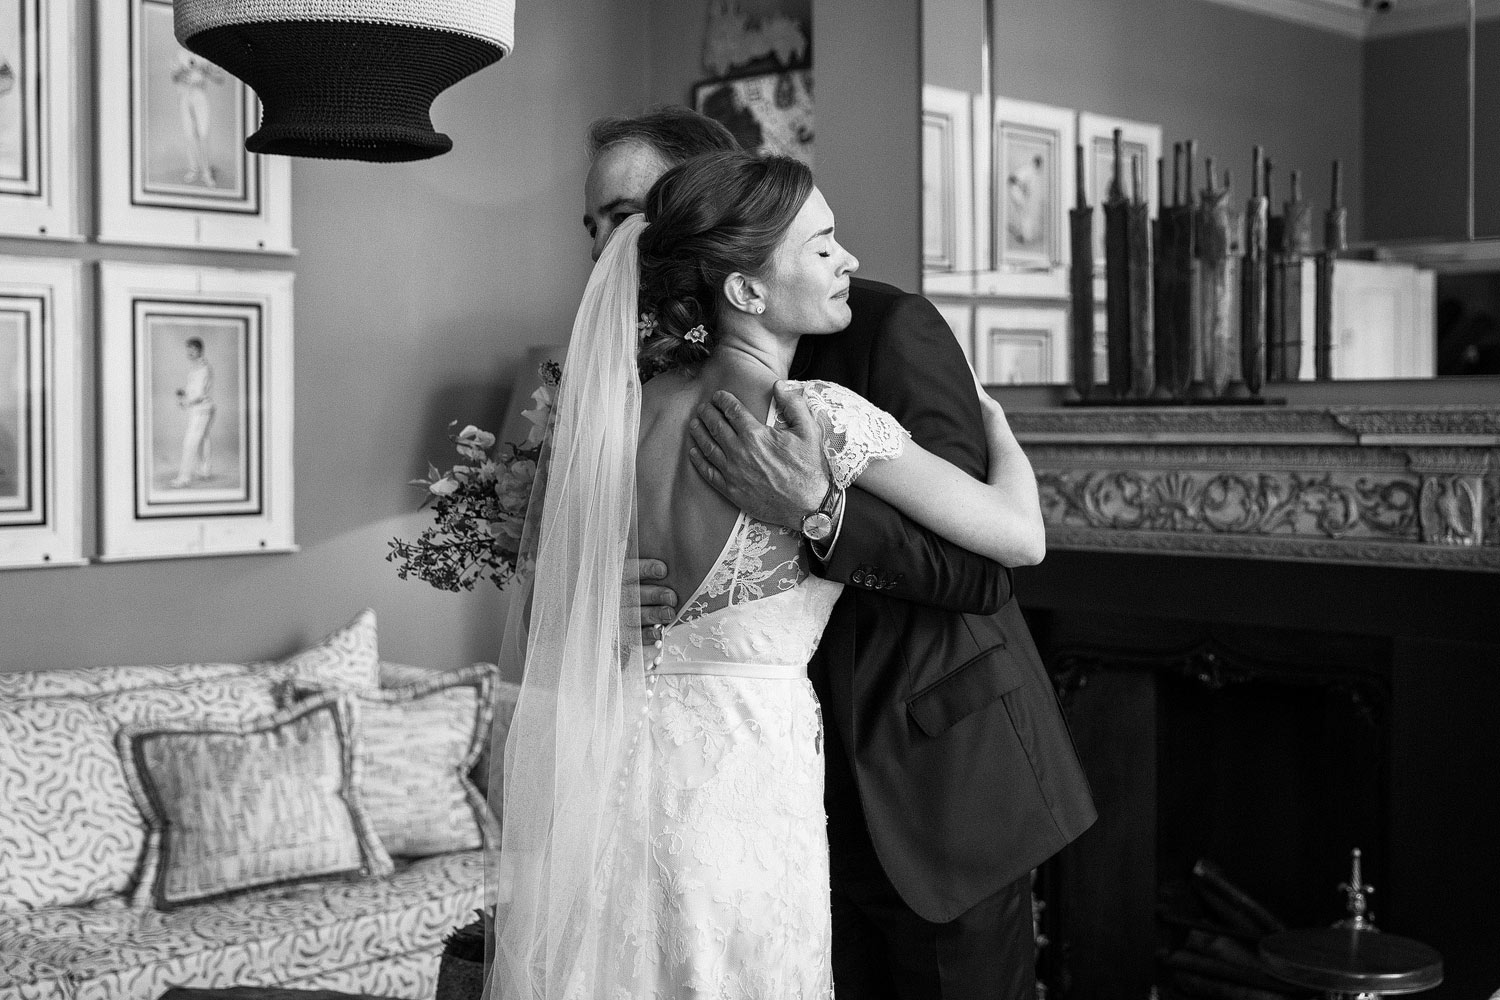 A bride cries while hugging her father at Dorset Square Hotel - London wedding photographer